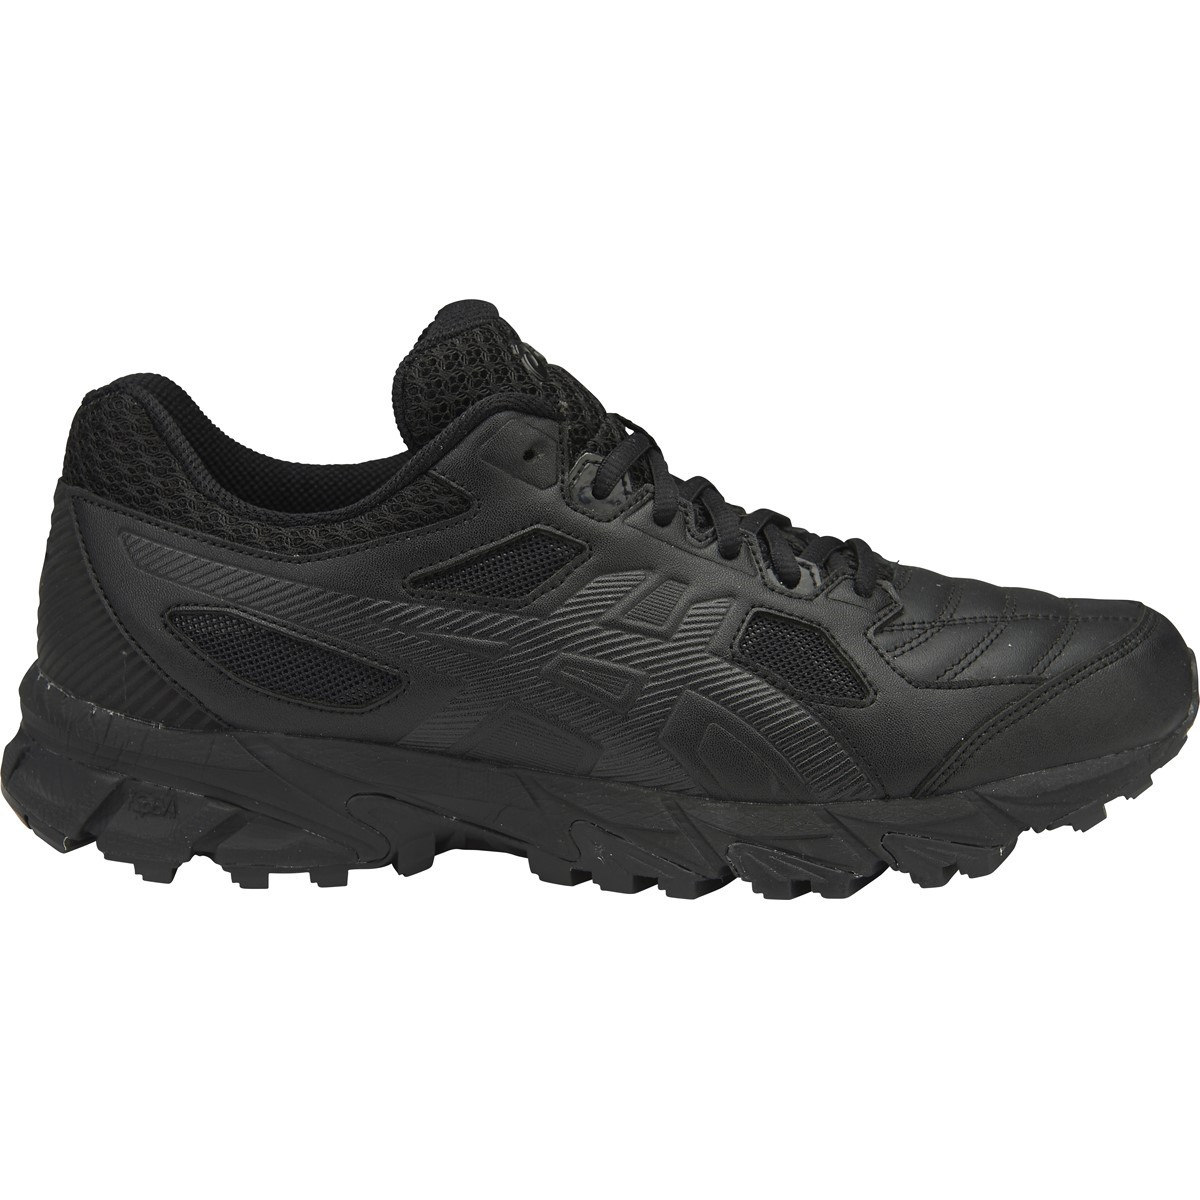 a13f82103444 Asics Gel Trigger 12 - Mens Cross Training Shoes - Black Onyx Black ...